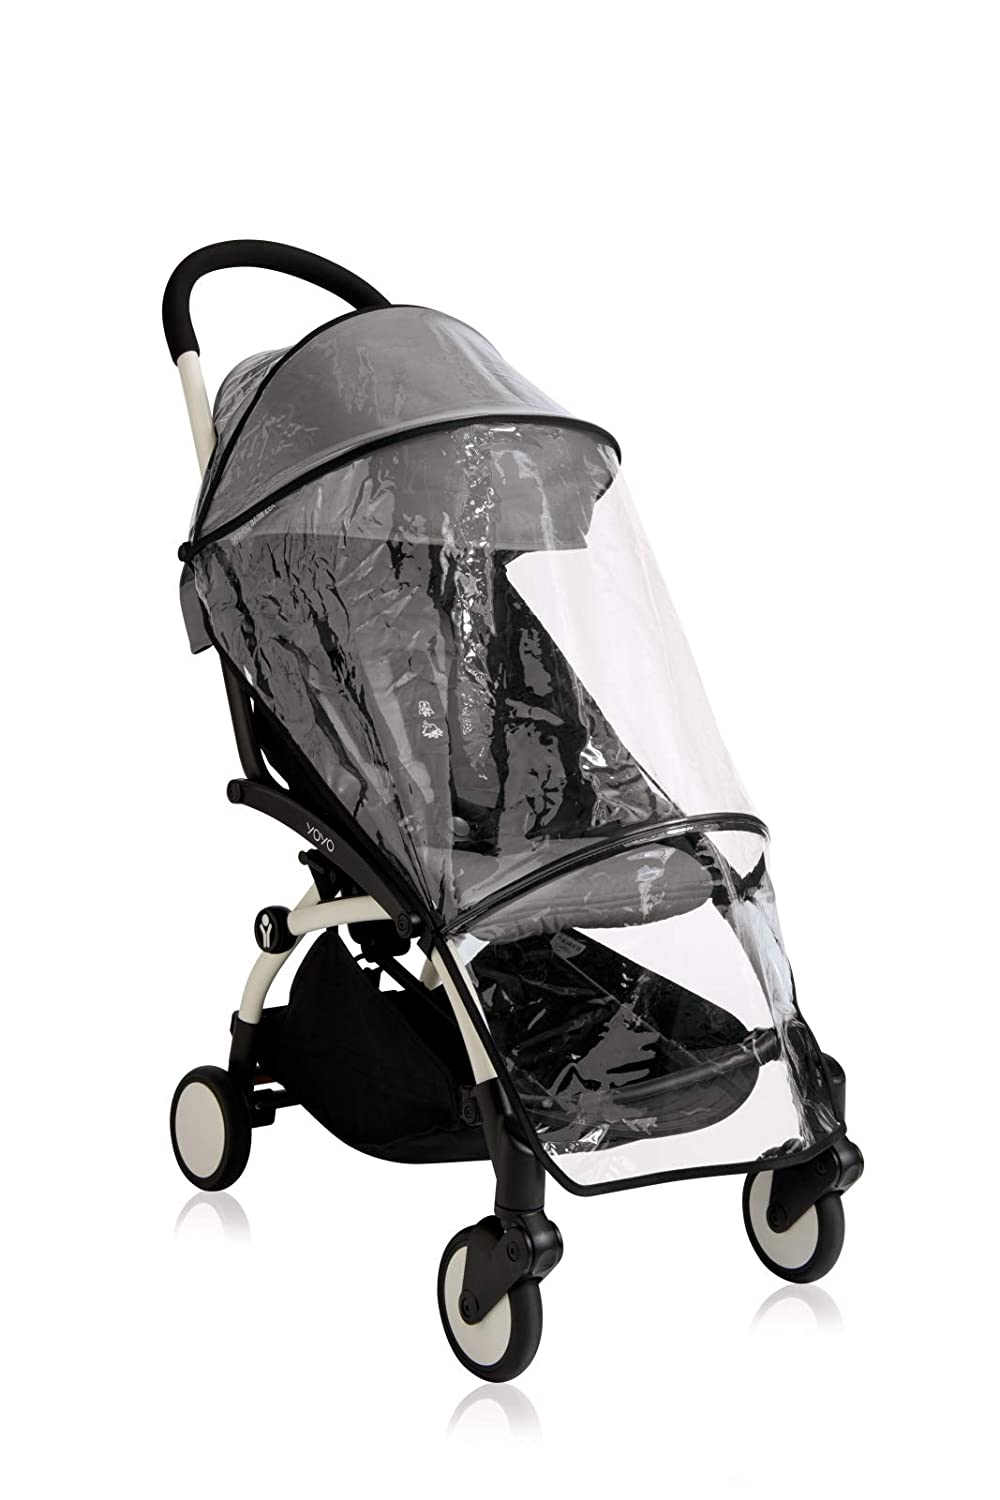 Pushchair Raincover Storm Cover Compatible with Babyzen Yoyo